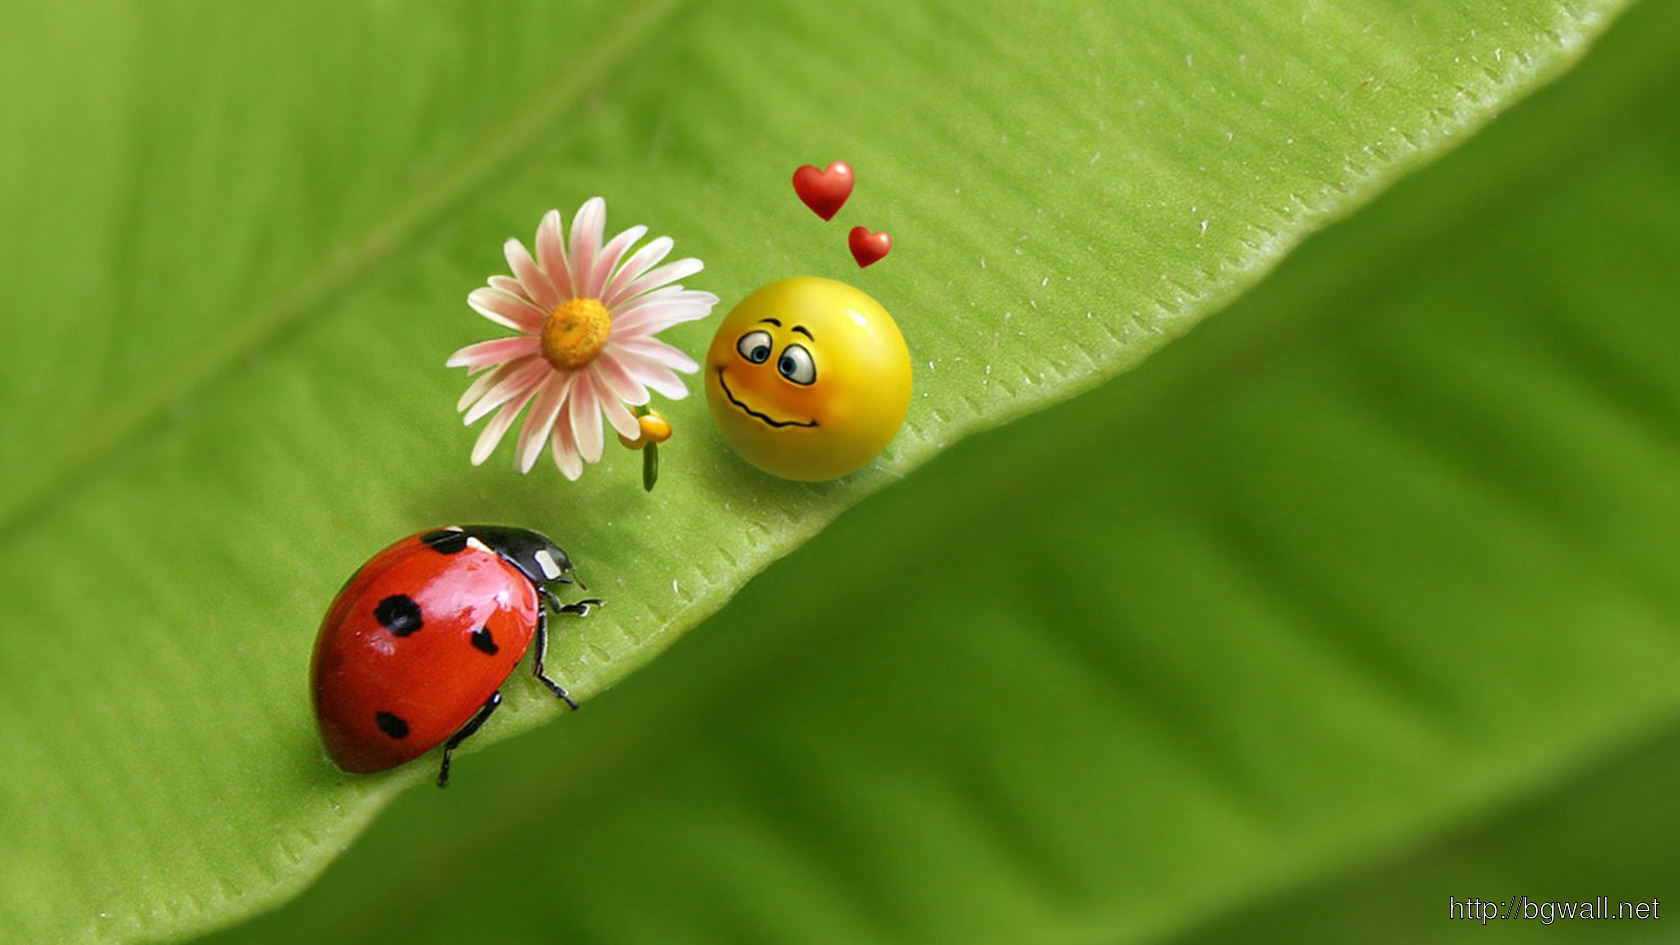 Download Ladybug And Smiley Face In Love Wallpaper